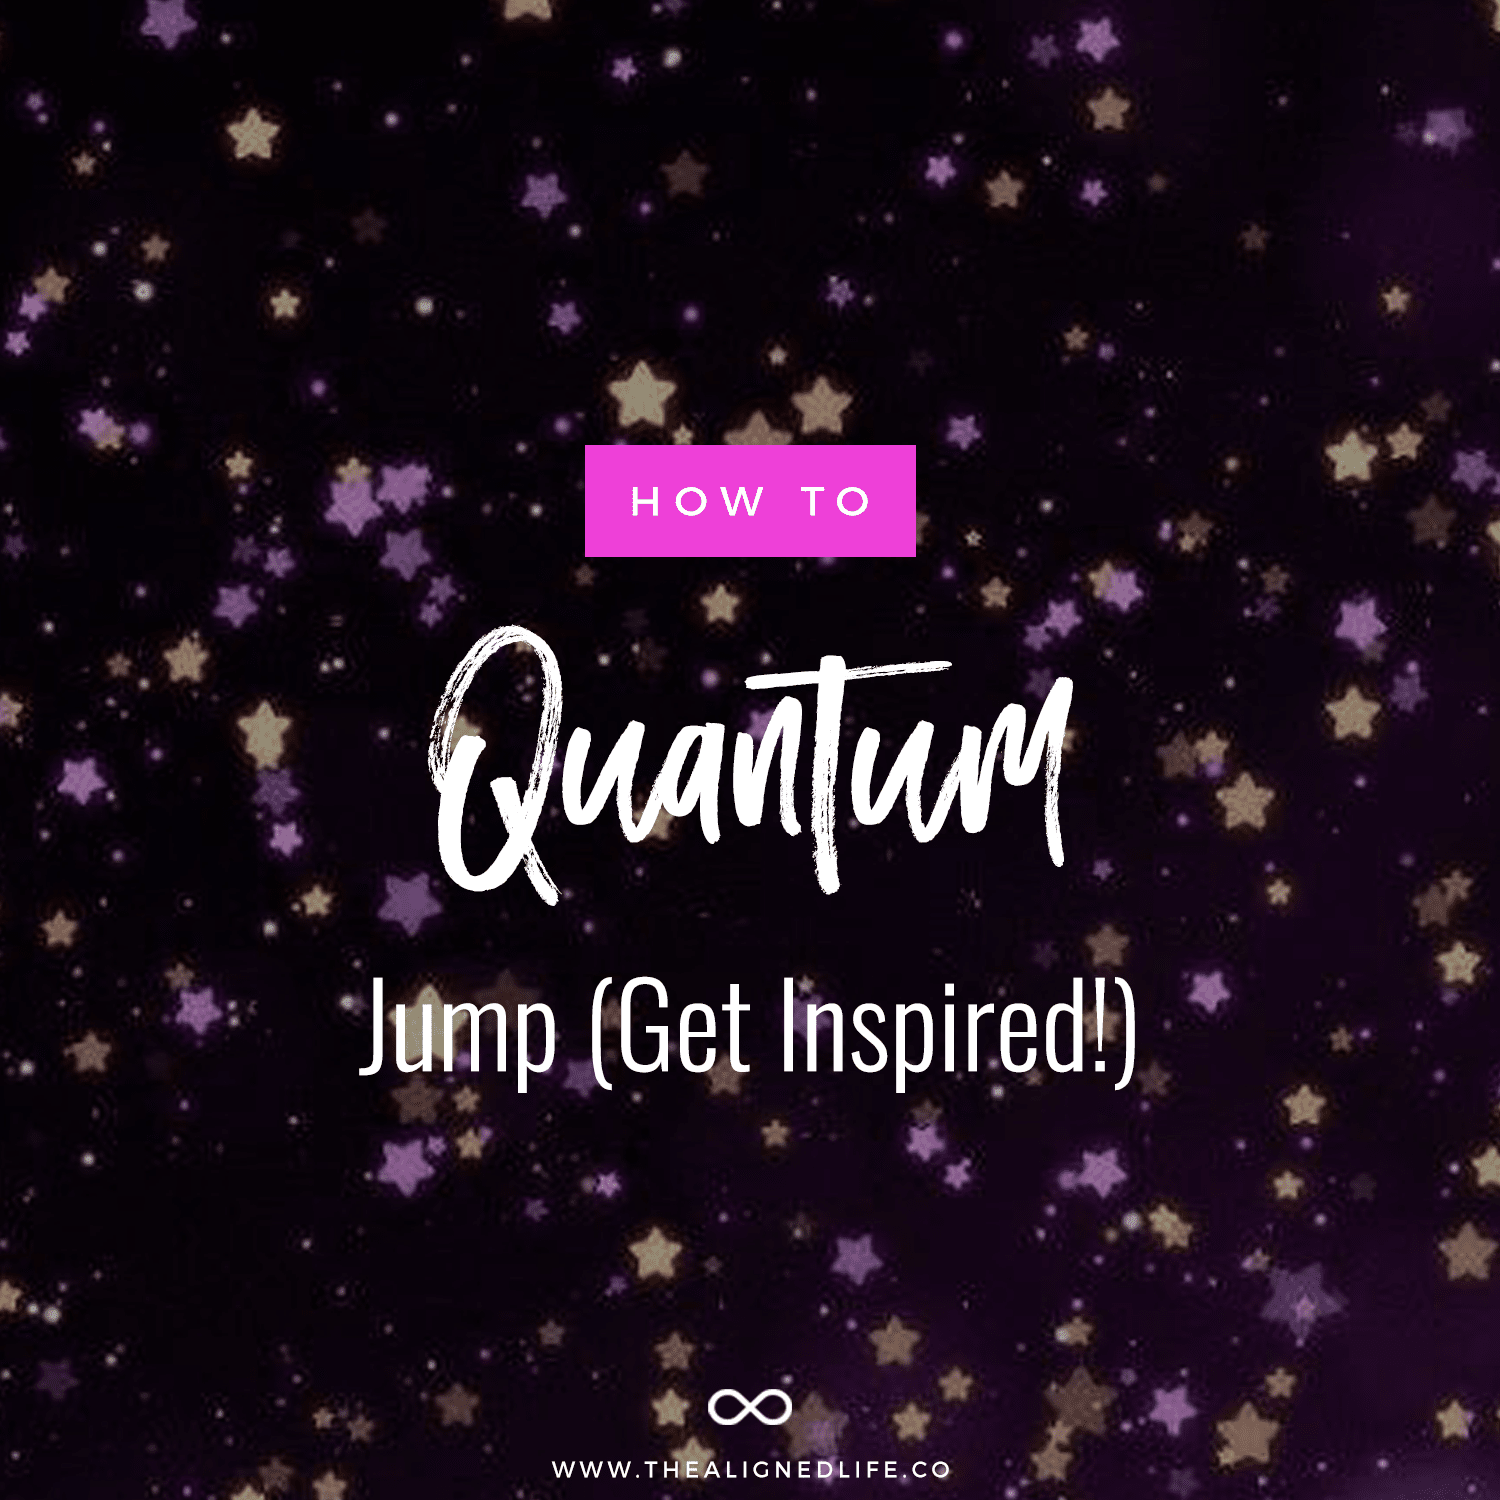 Video: How To Quantum Jump